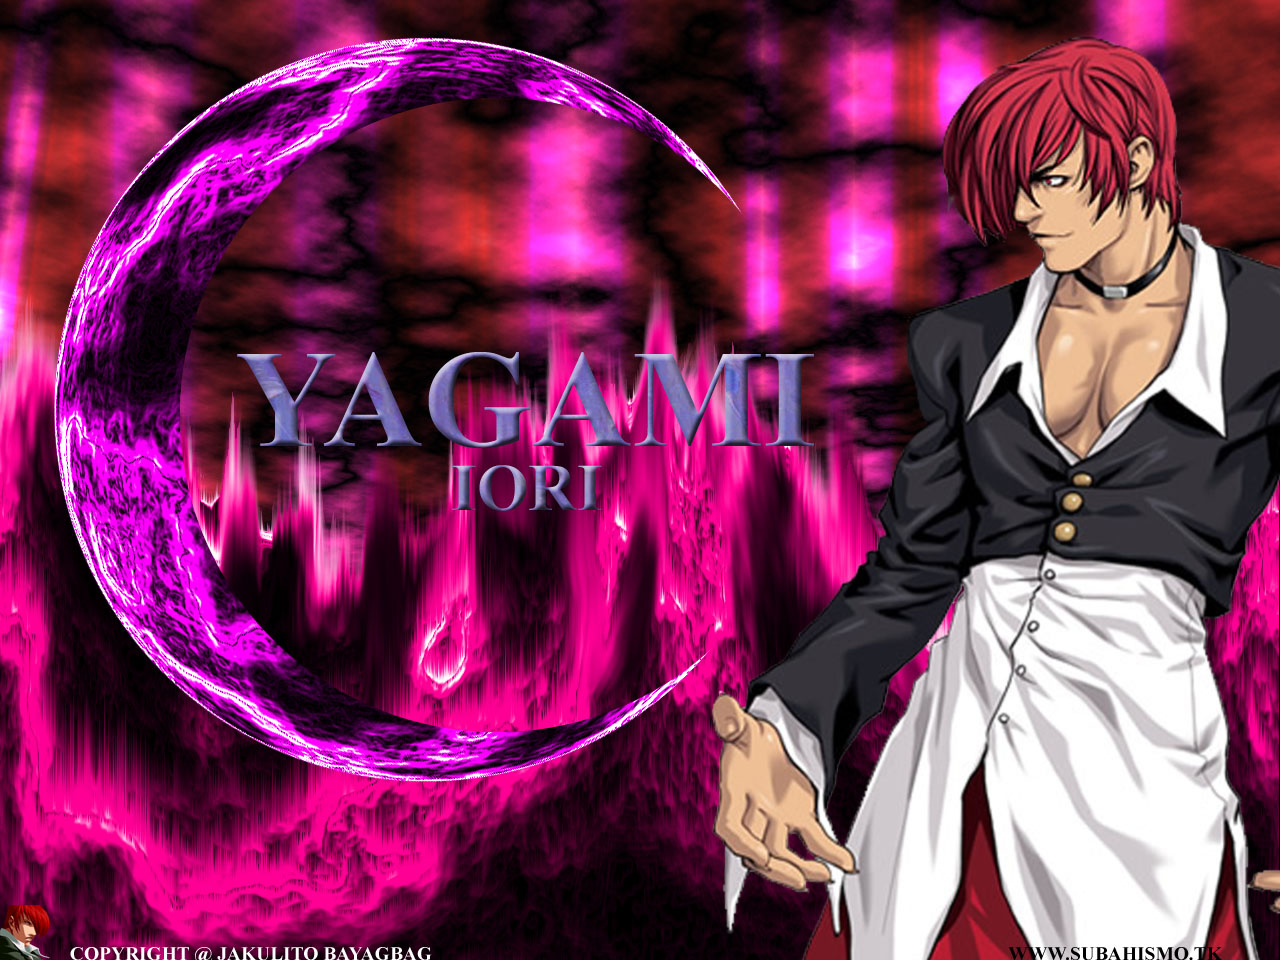 http://2.bp.blogspot.com/-TyXTHOKgYfk/UOFTBszqgfI/AAAAAAAAAOM/uMlTcsZ2ghk/s1600/Yagami+Iori++King+of+Fighter++Wallpaper.jpg